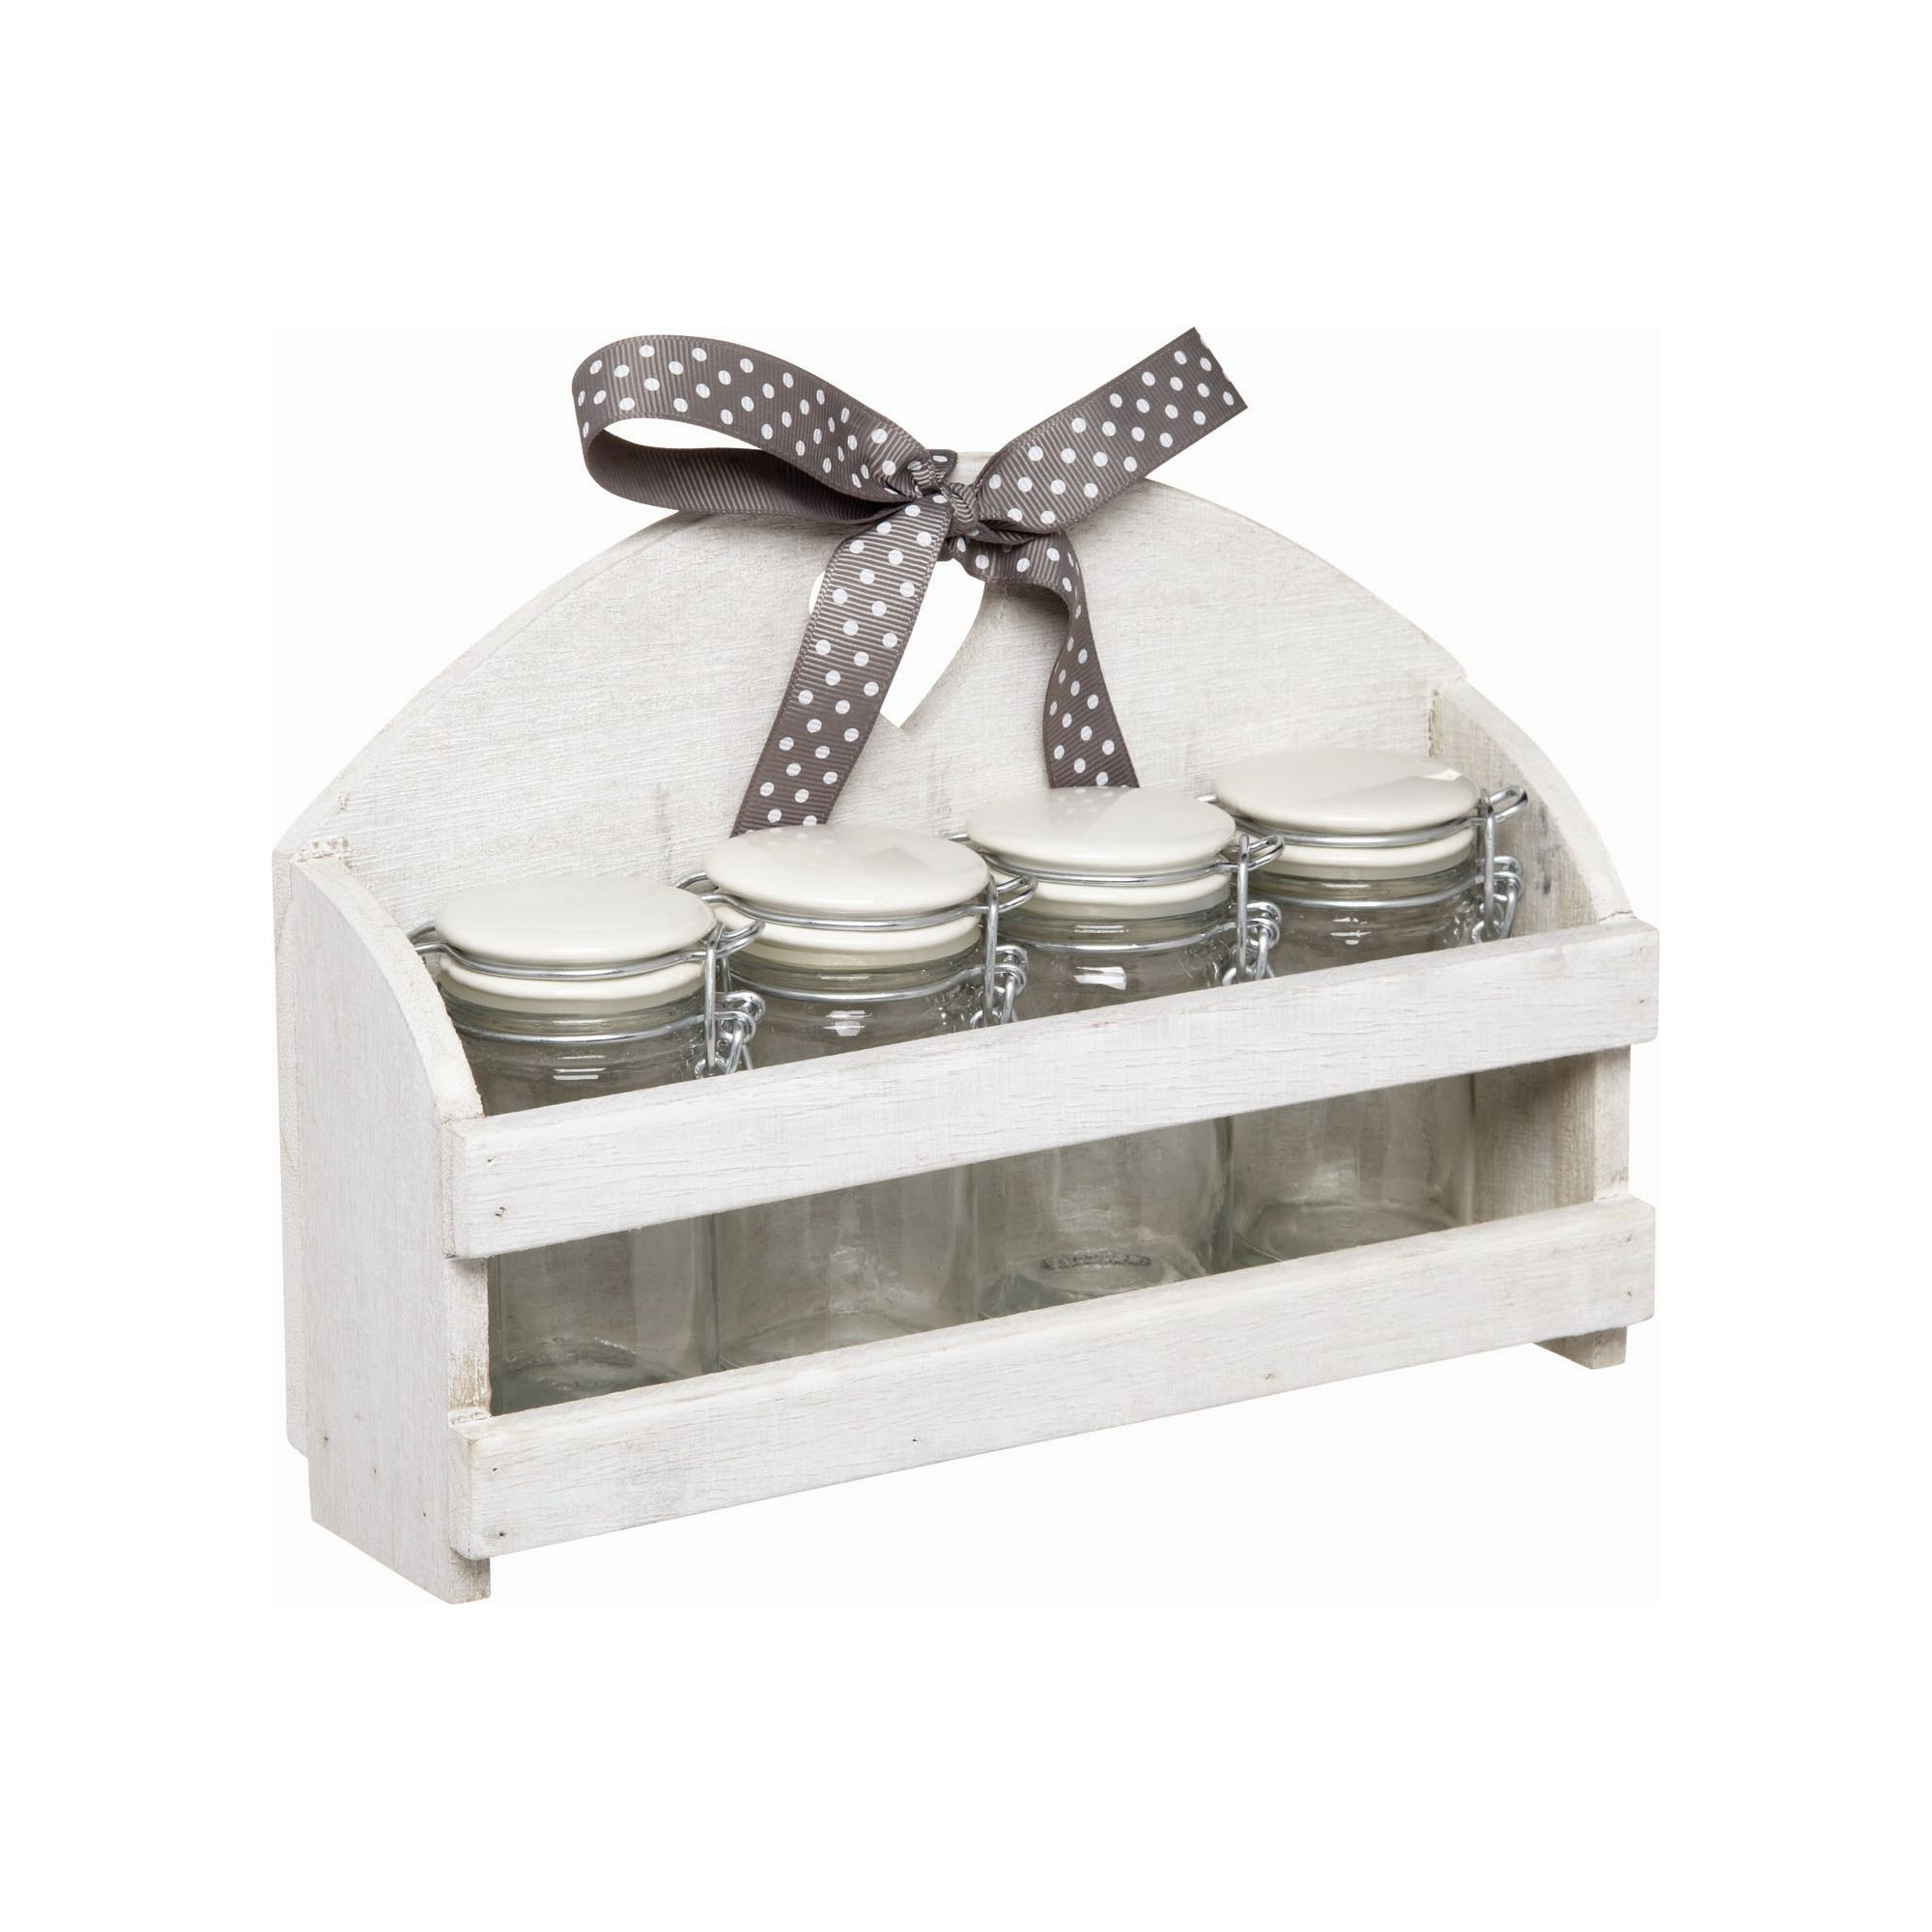 KitchenCraft Home Made Set of Four 70ml Storage Jars with Ceramic Lids and Wooden Stand